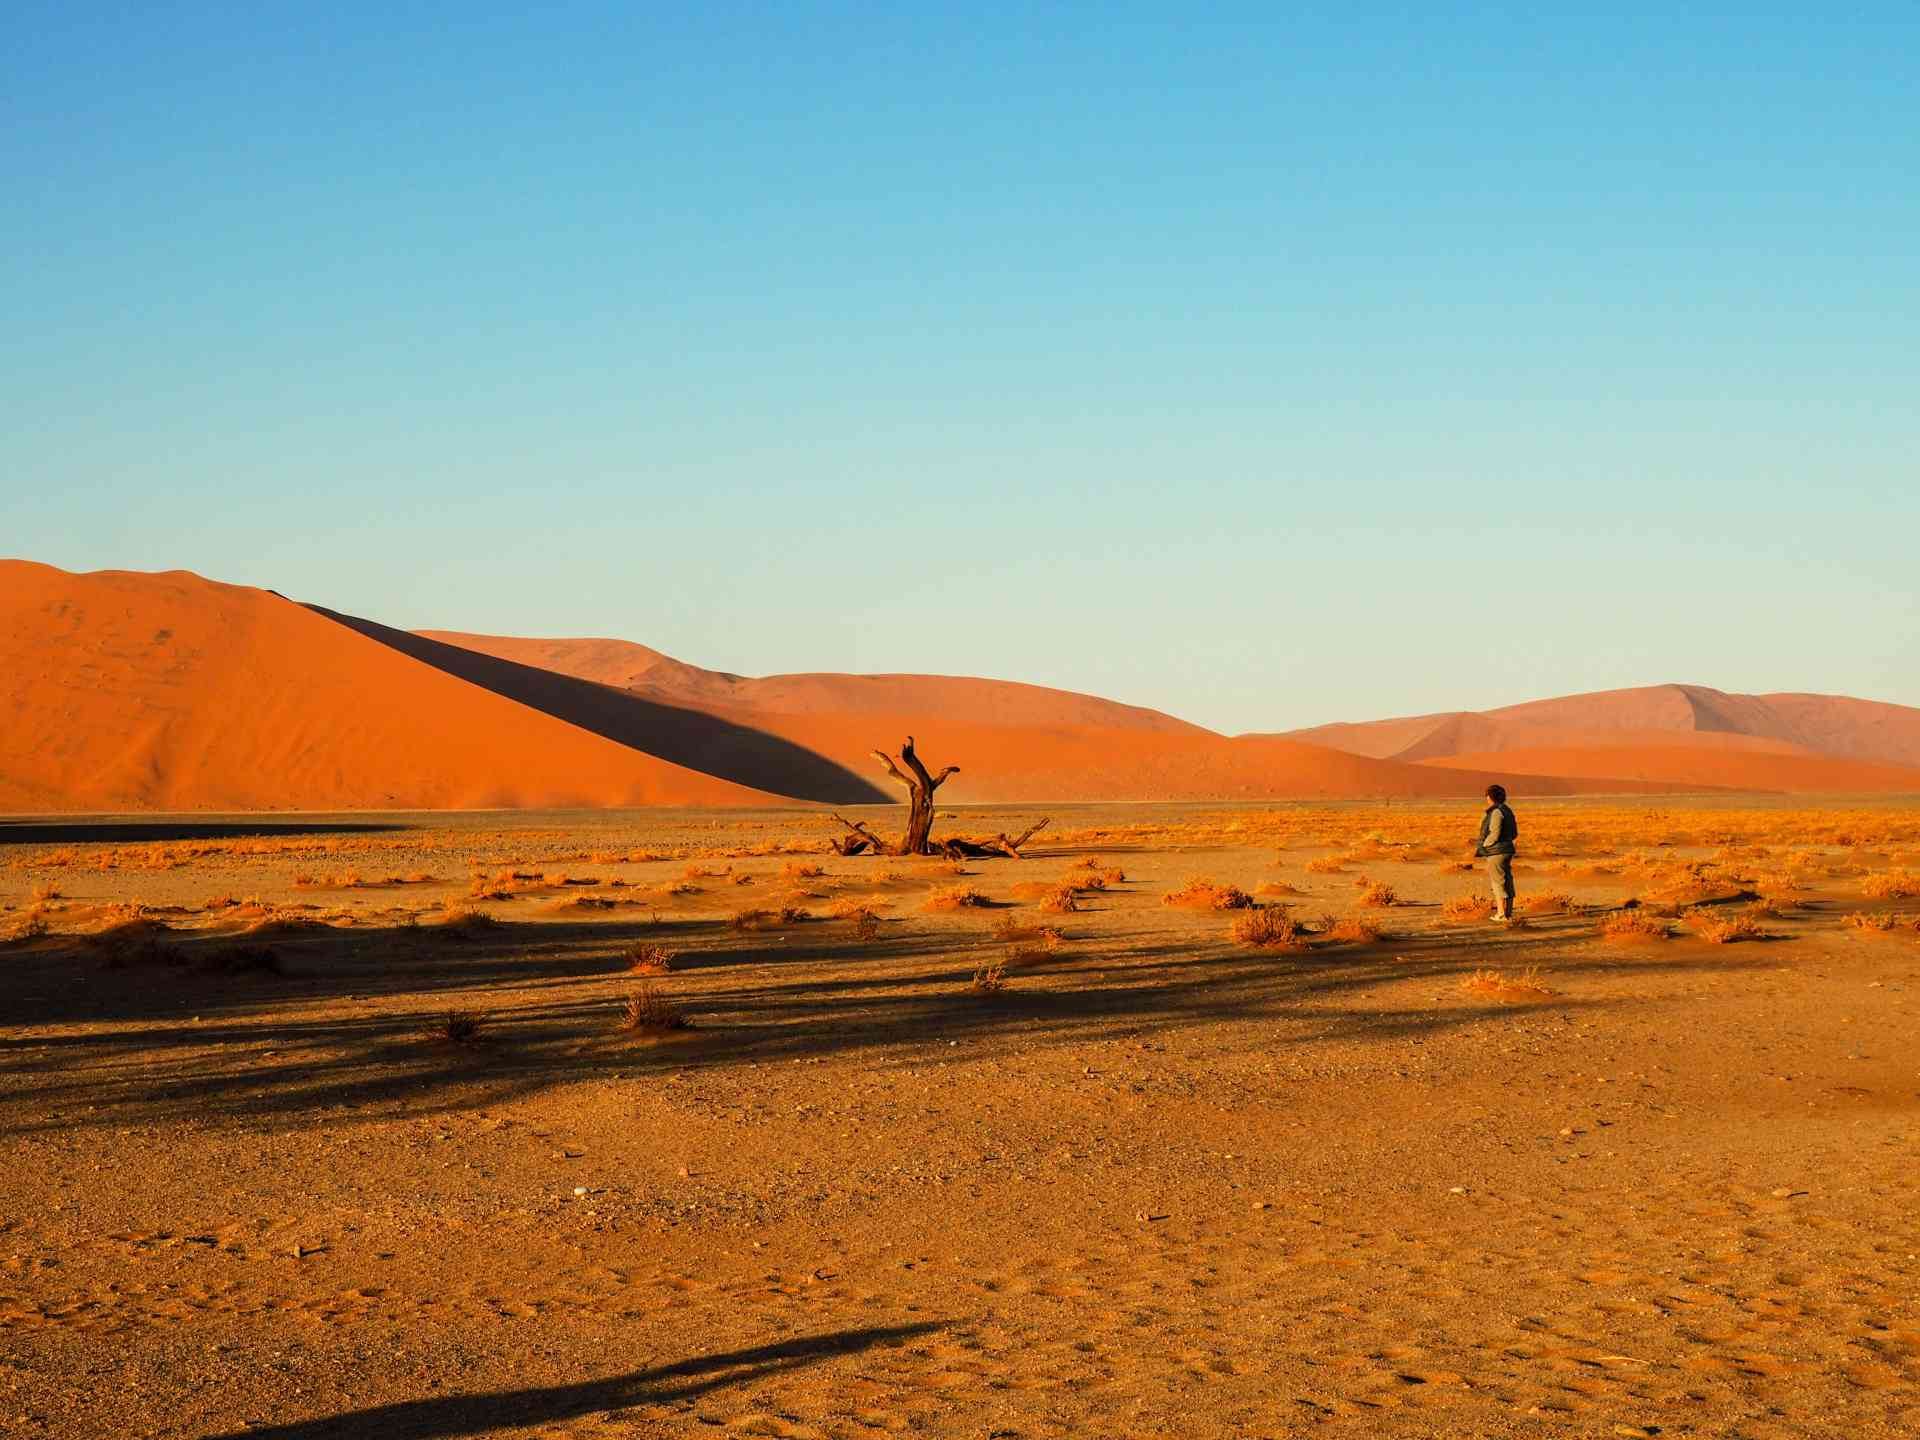 Discover the dunes & deserts of Namibia